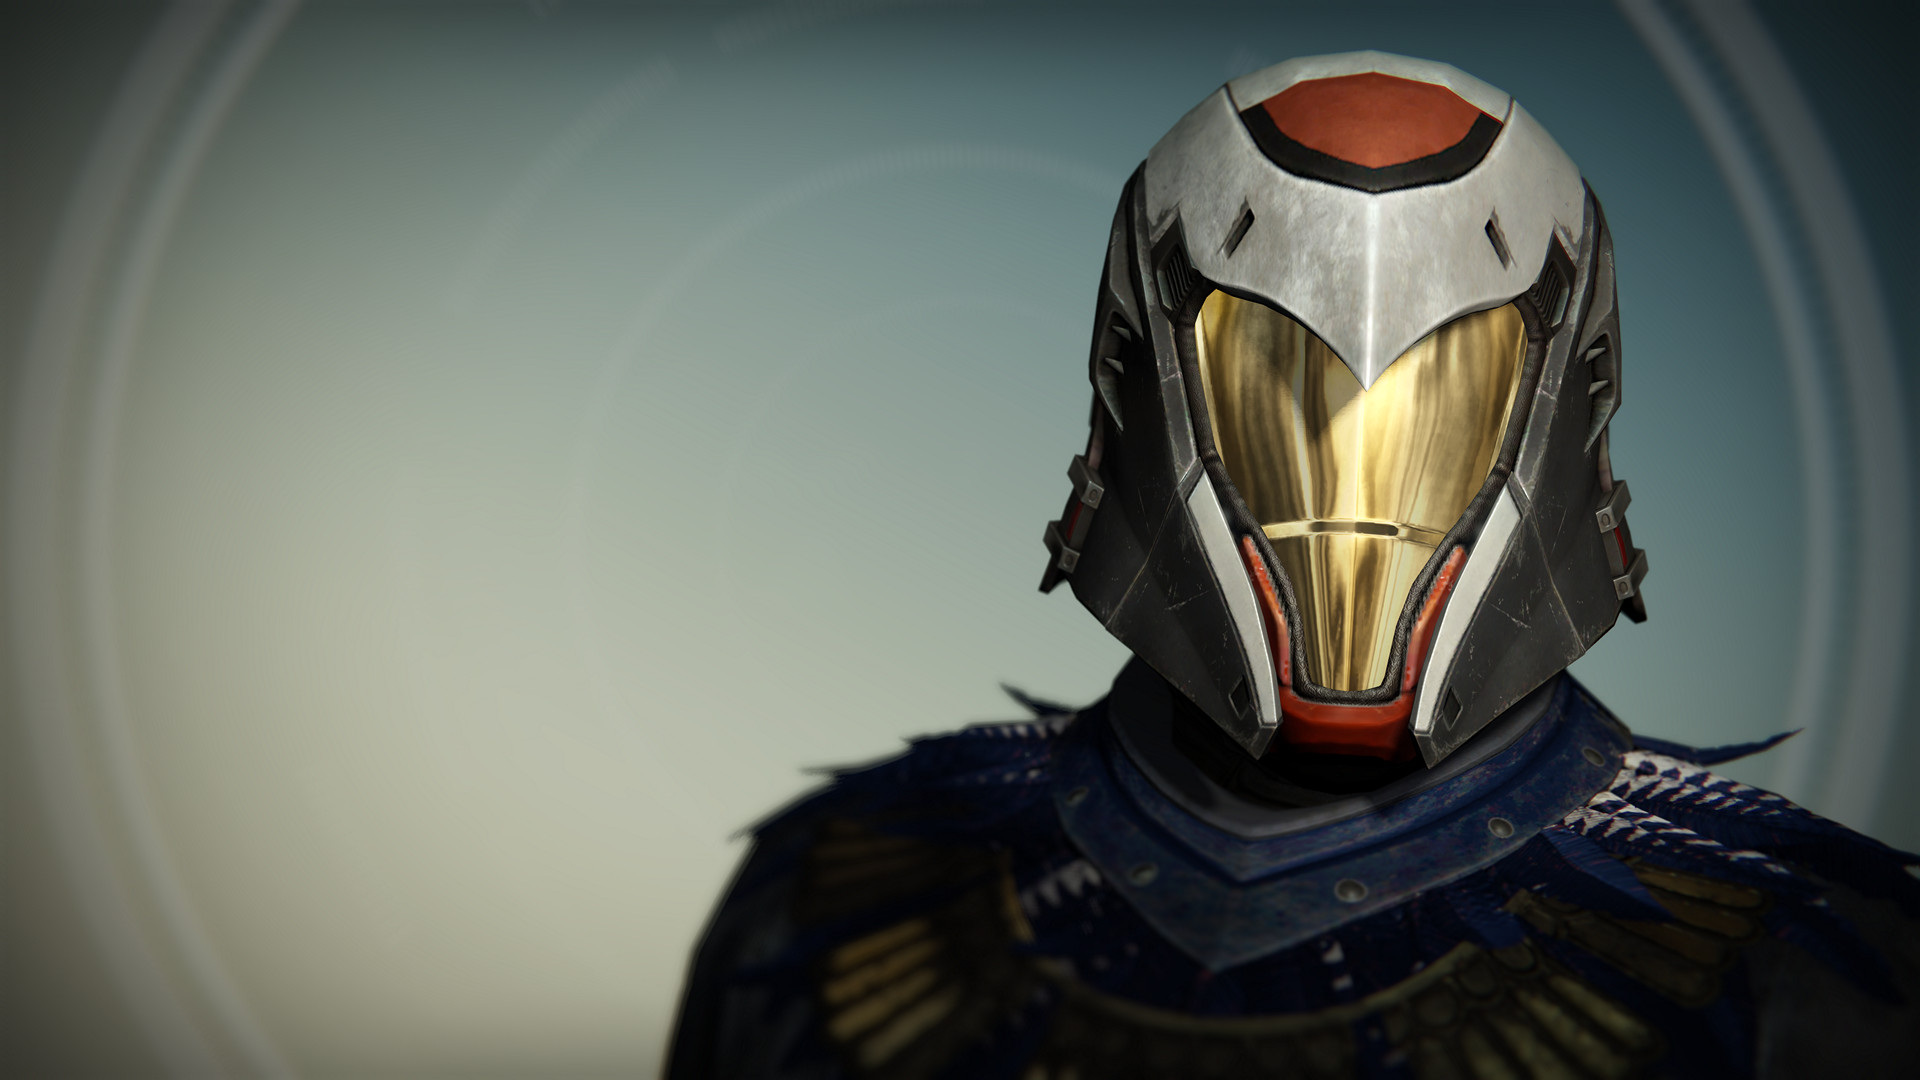 warlock destiny by bungie wallpapers 75 images